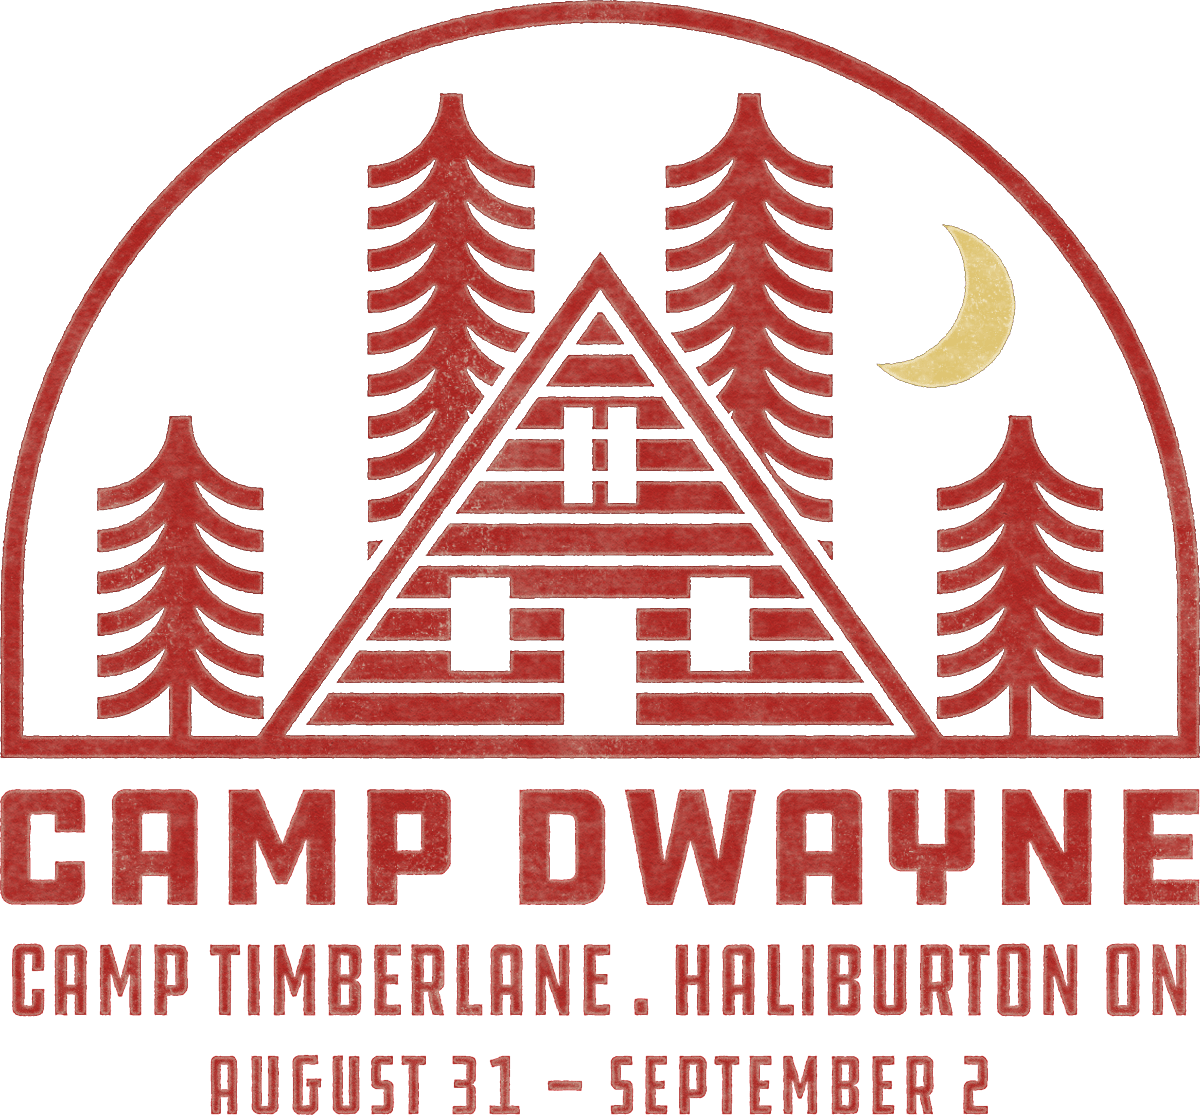 Camp Dwayne Logo Illustration of Log Cabin with Trees and Sunrise